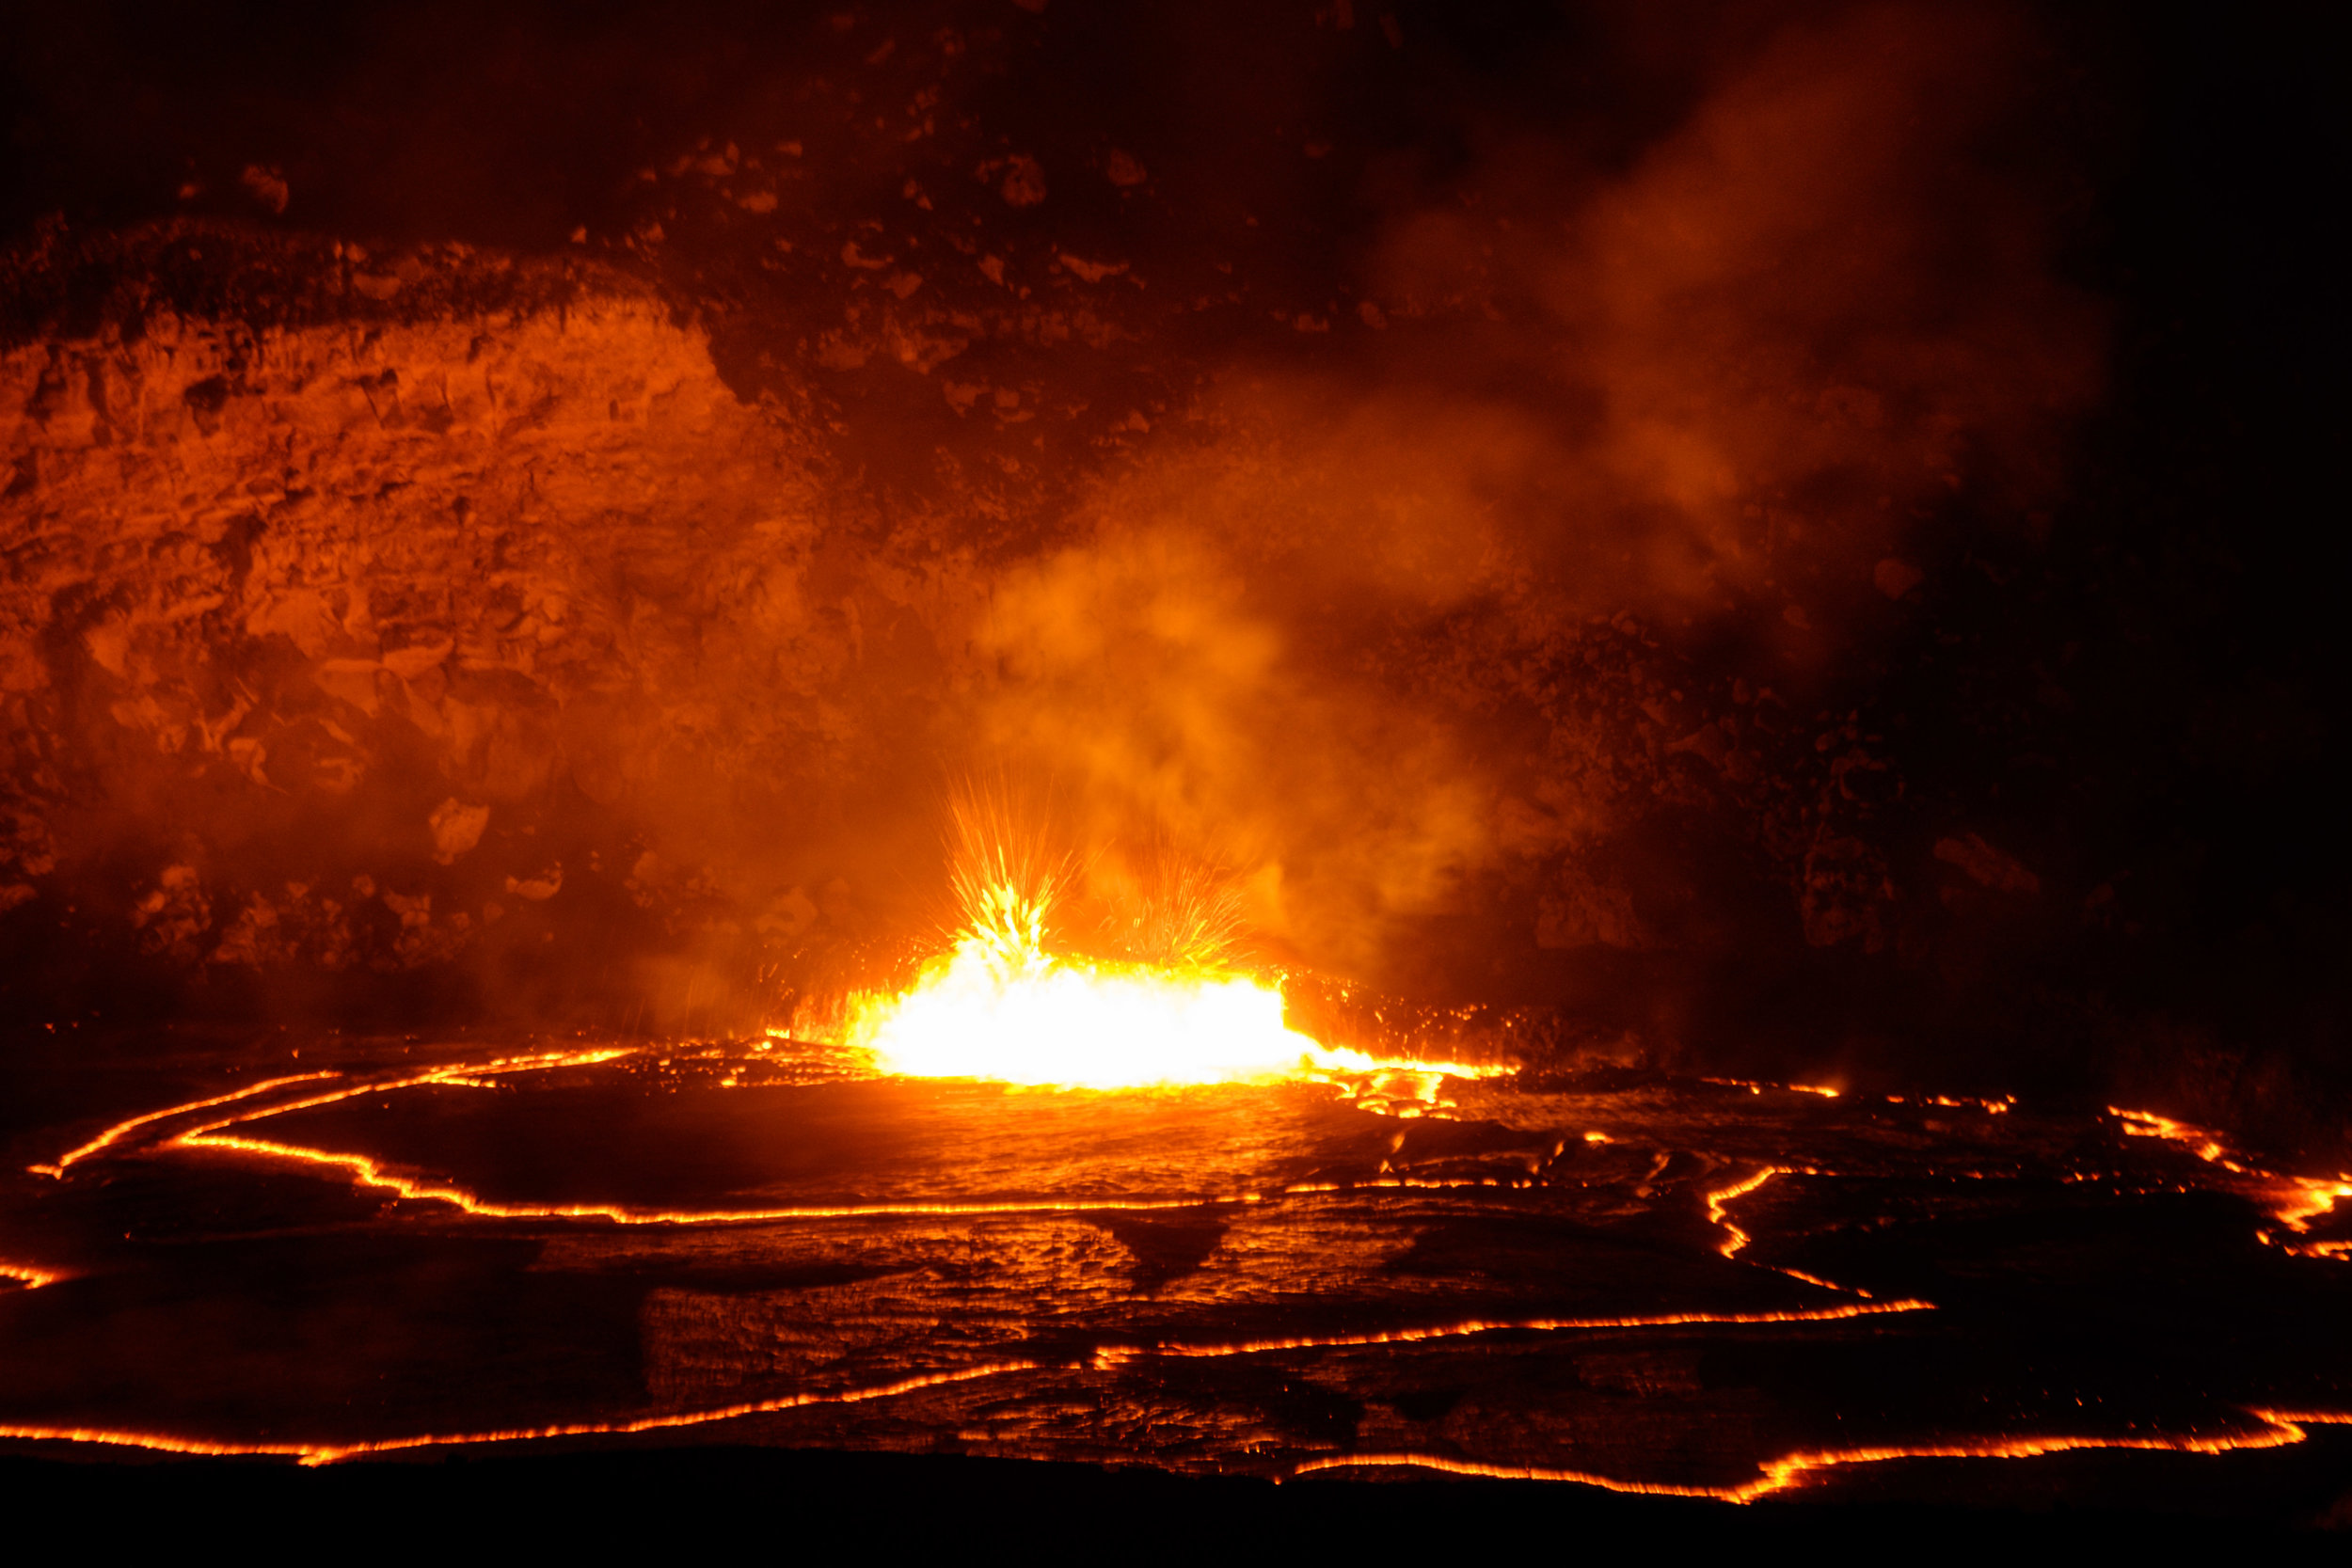 We stopped back at the crater to see the show at night.